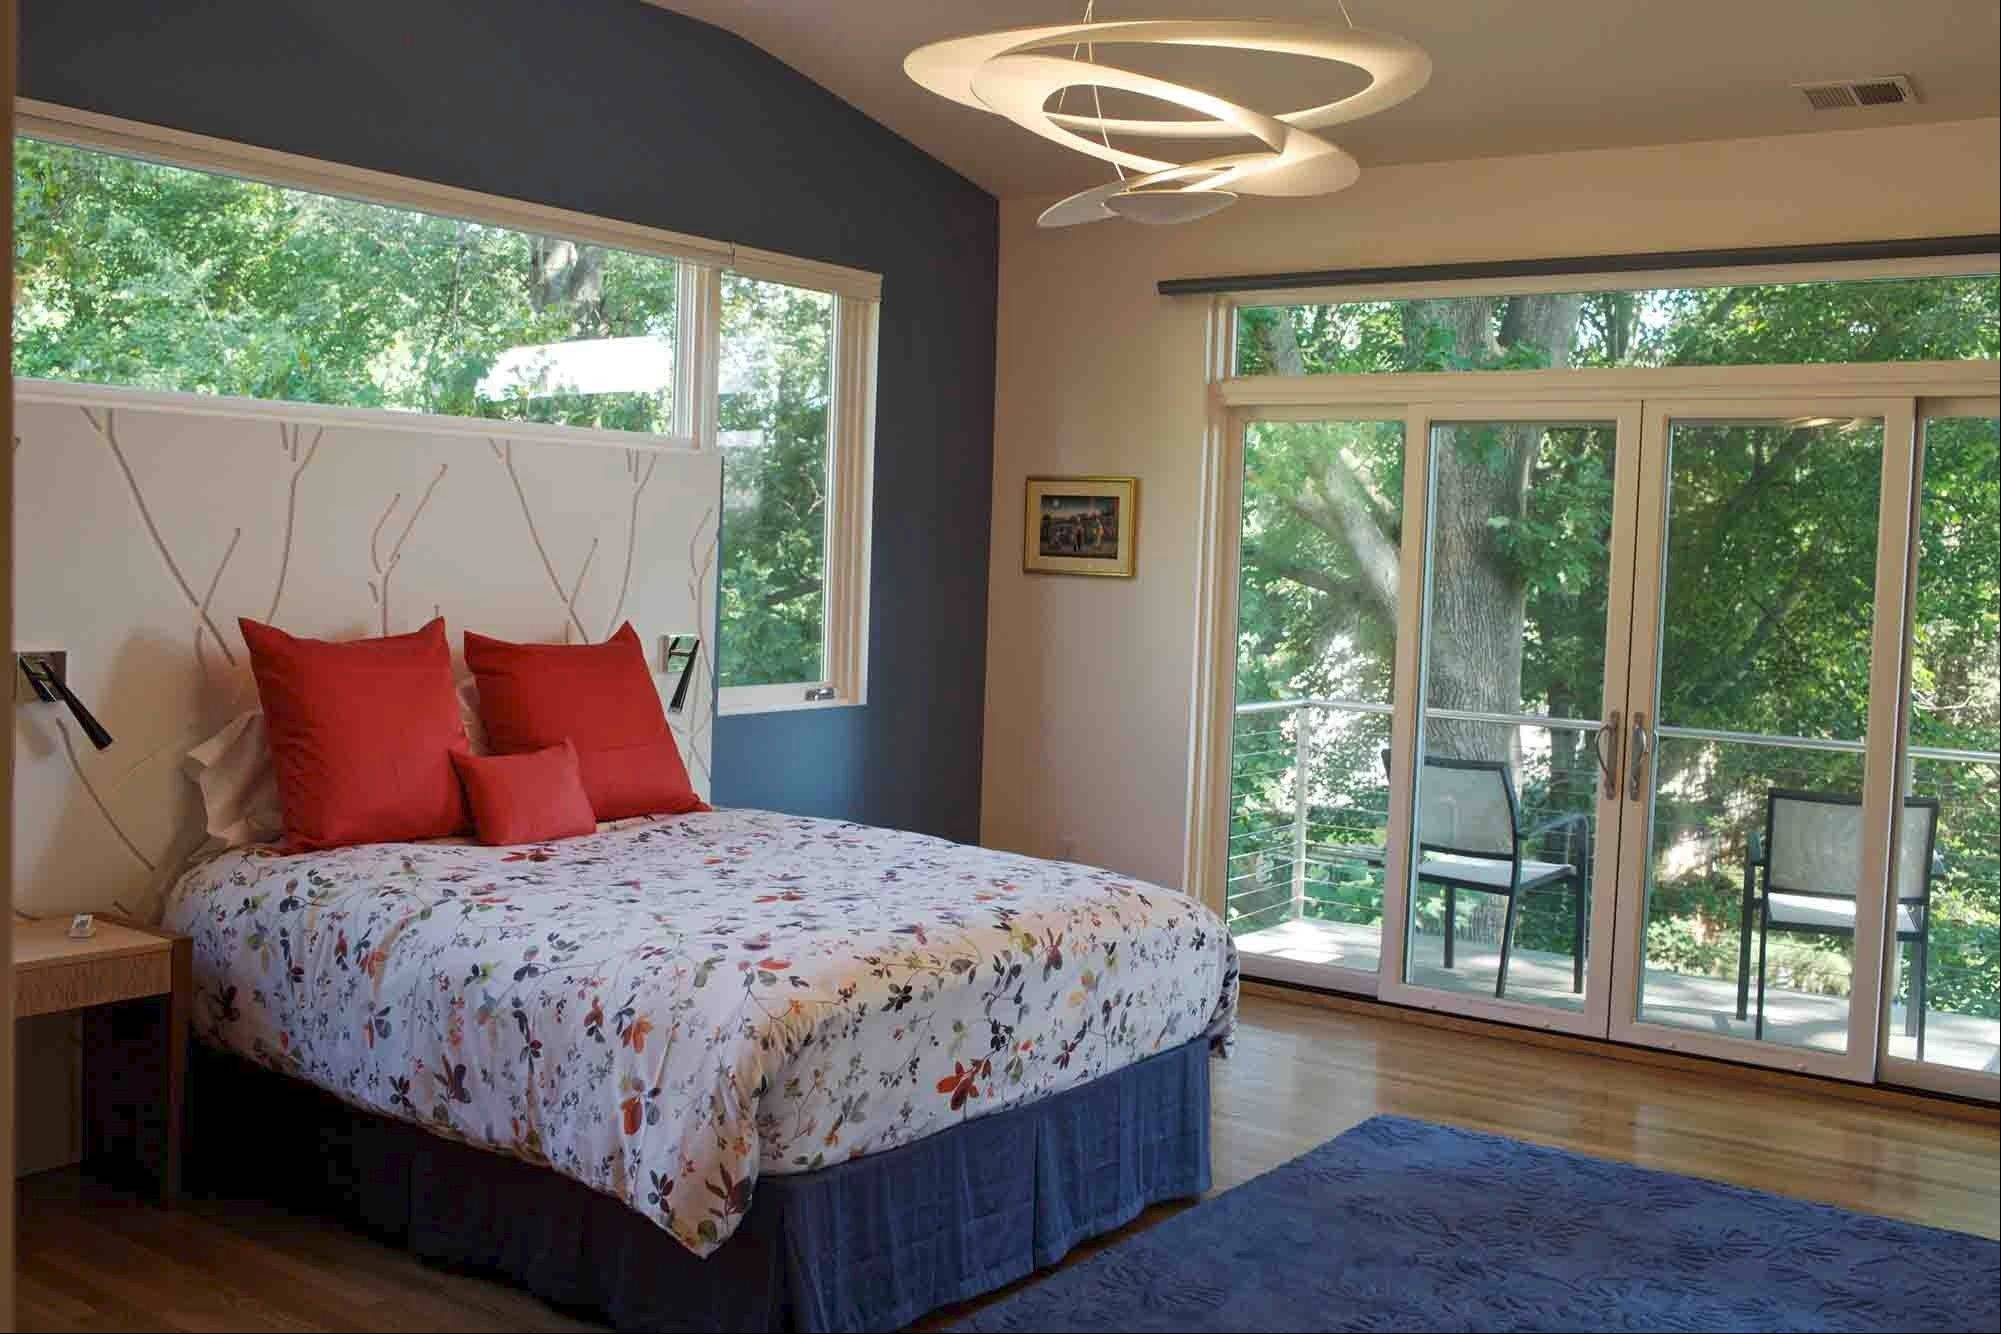 This view of the master bedroom shows the wall panels used in lieu of a headboard and the new balcony. The rug, purchased through ModernRugs.com, was made in a custom color by Nani Marquina and the Vibia slim wall lights were ordered through Yliving.com.